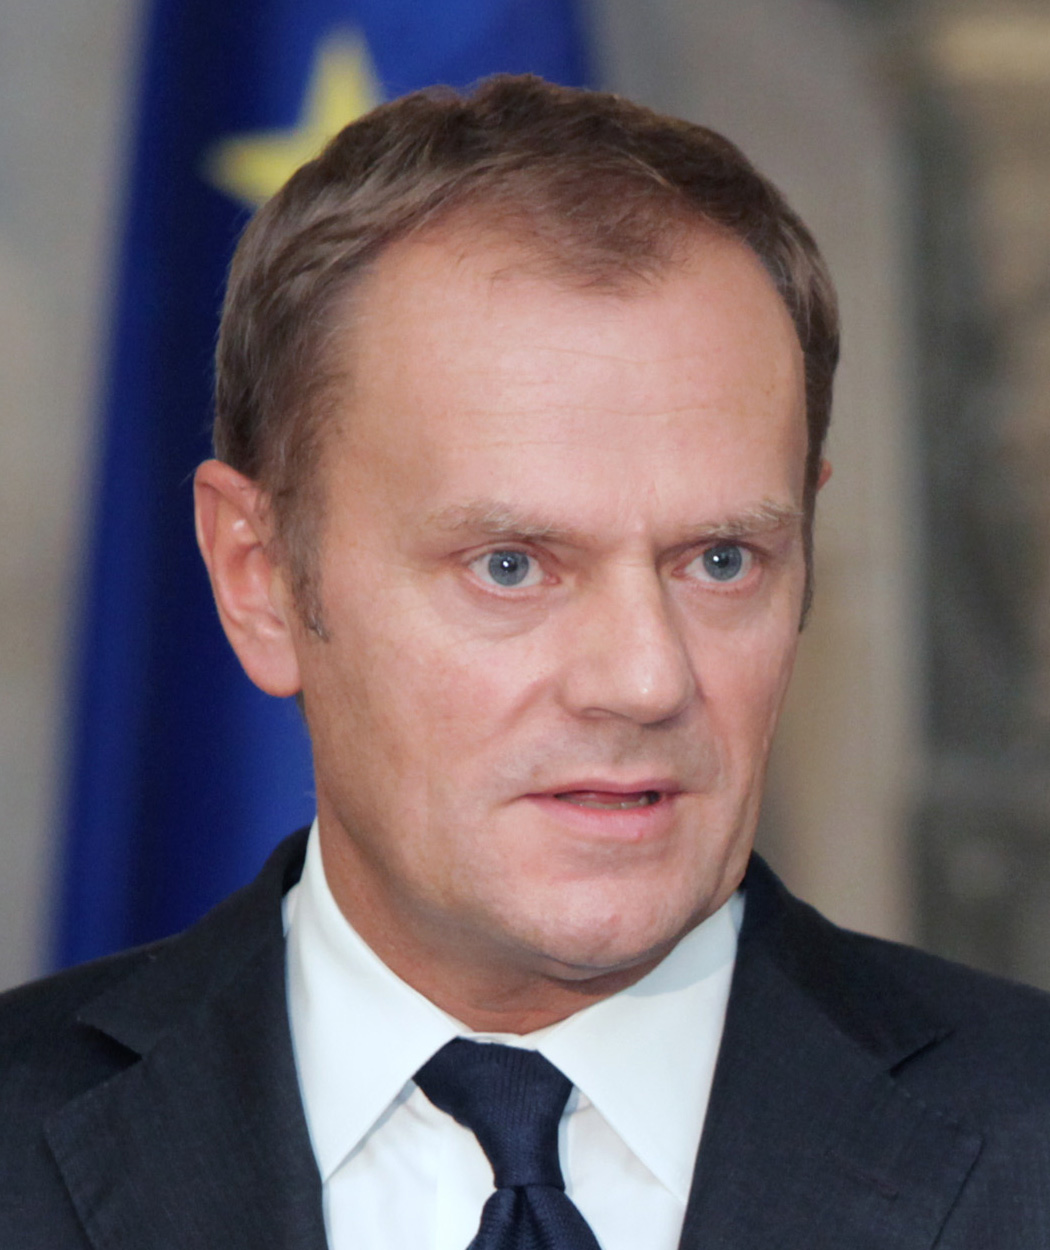 Depiction of Donald Tusk